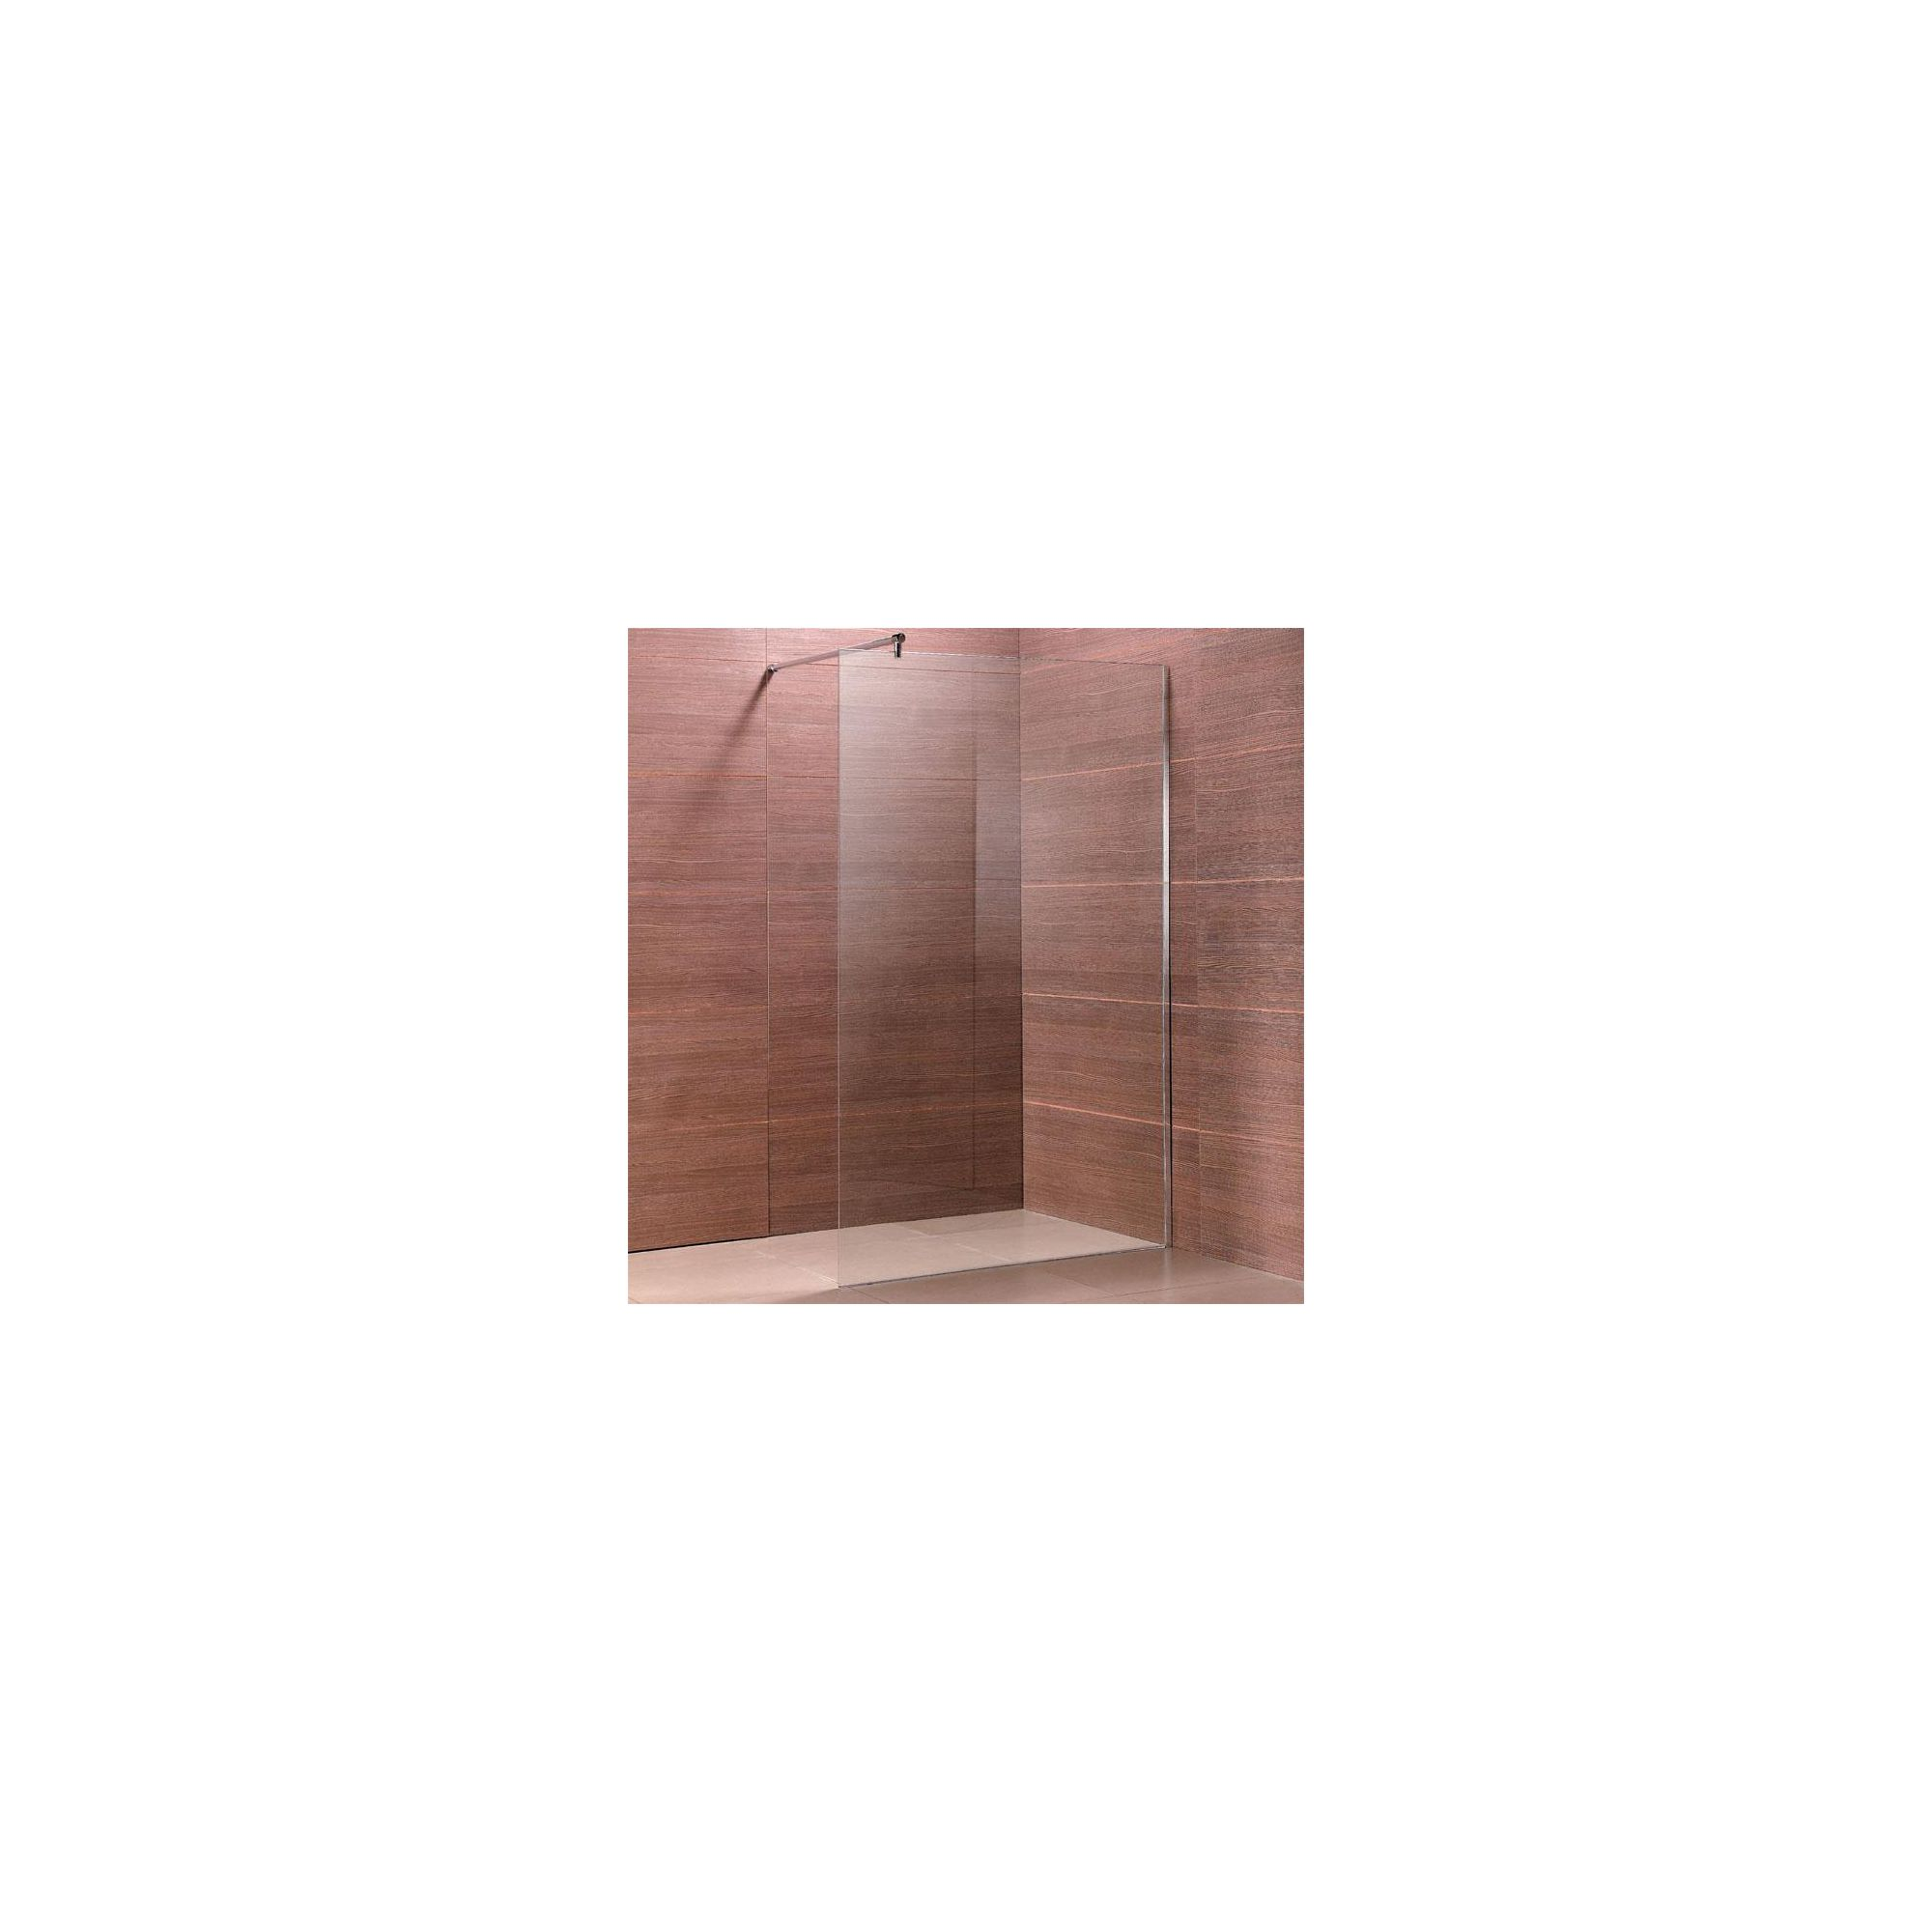 Duchy Premium Wet Room Glass Shower Panel, 1100mm x 700mm, 8mm Glass, Low Profile Tray at Tesco Direct